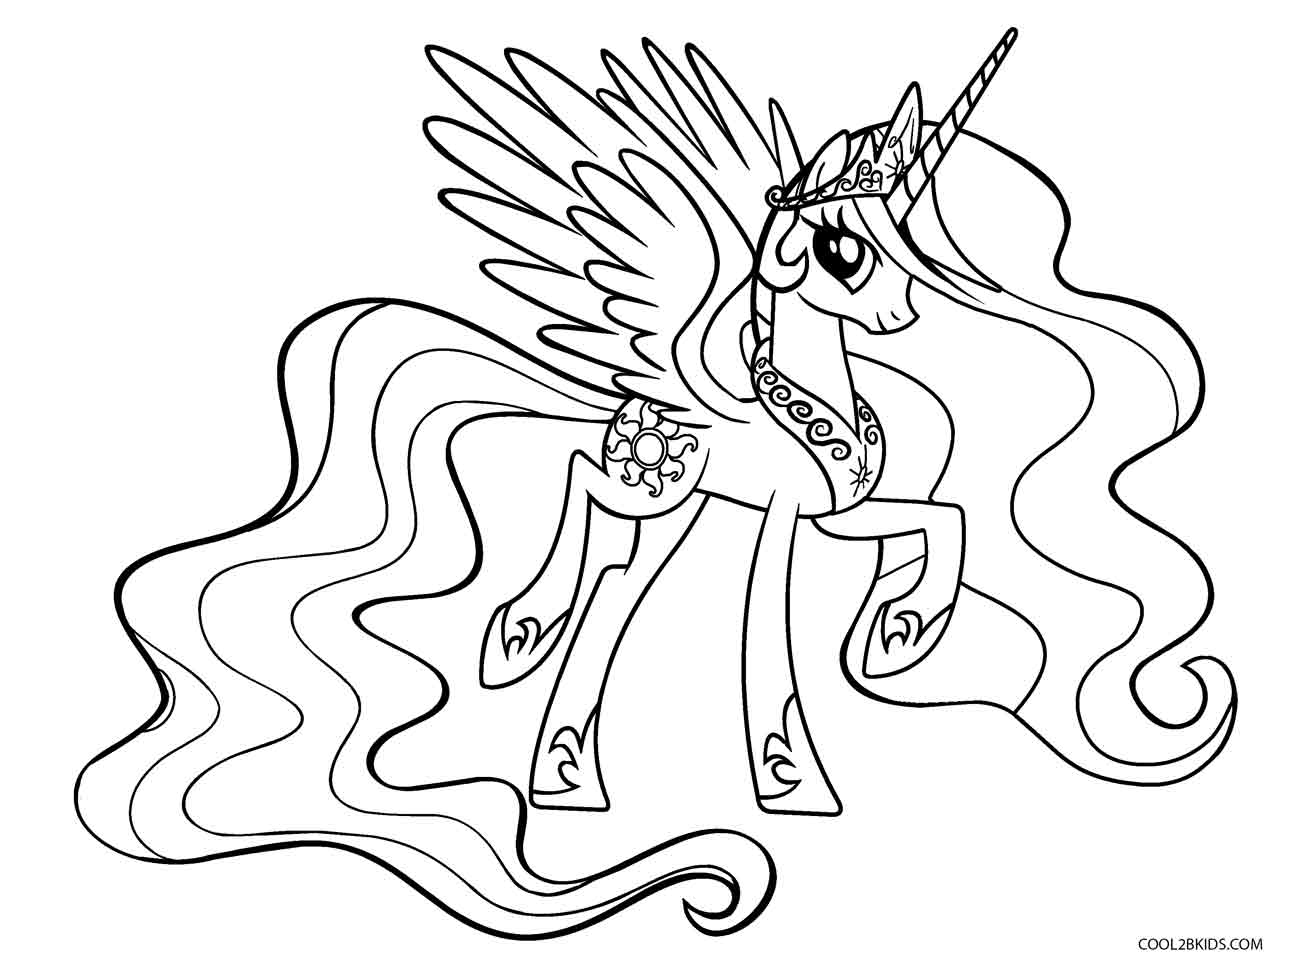 my little pony colouring pictures cute little pony my little pony coloring pages big bang little pictures pony colouring my